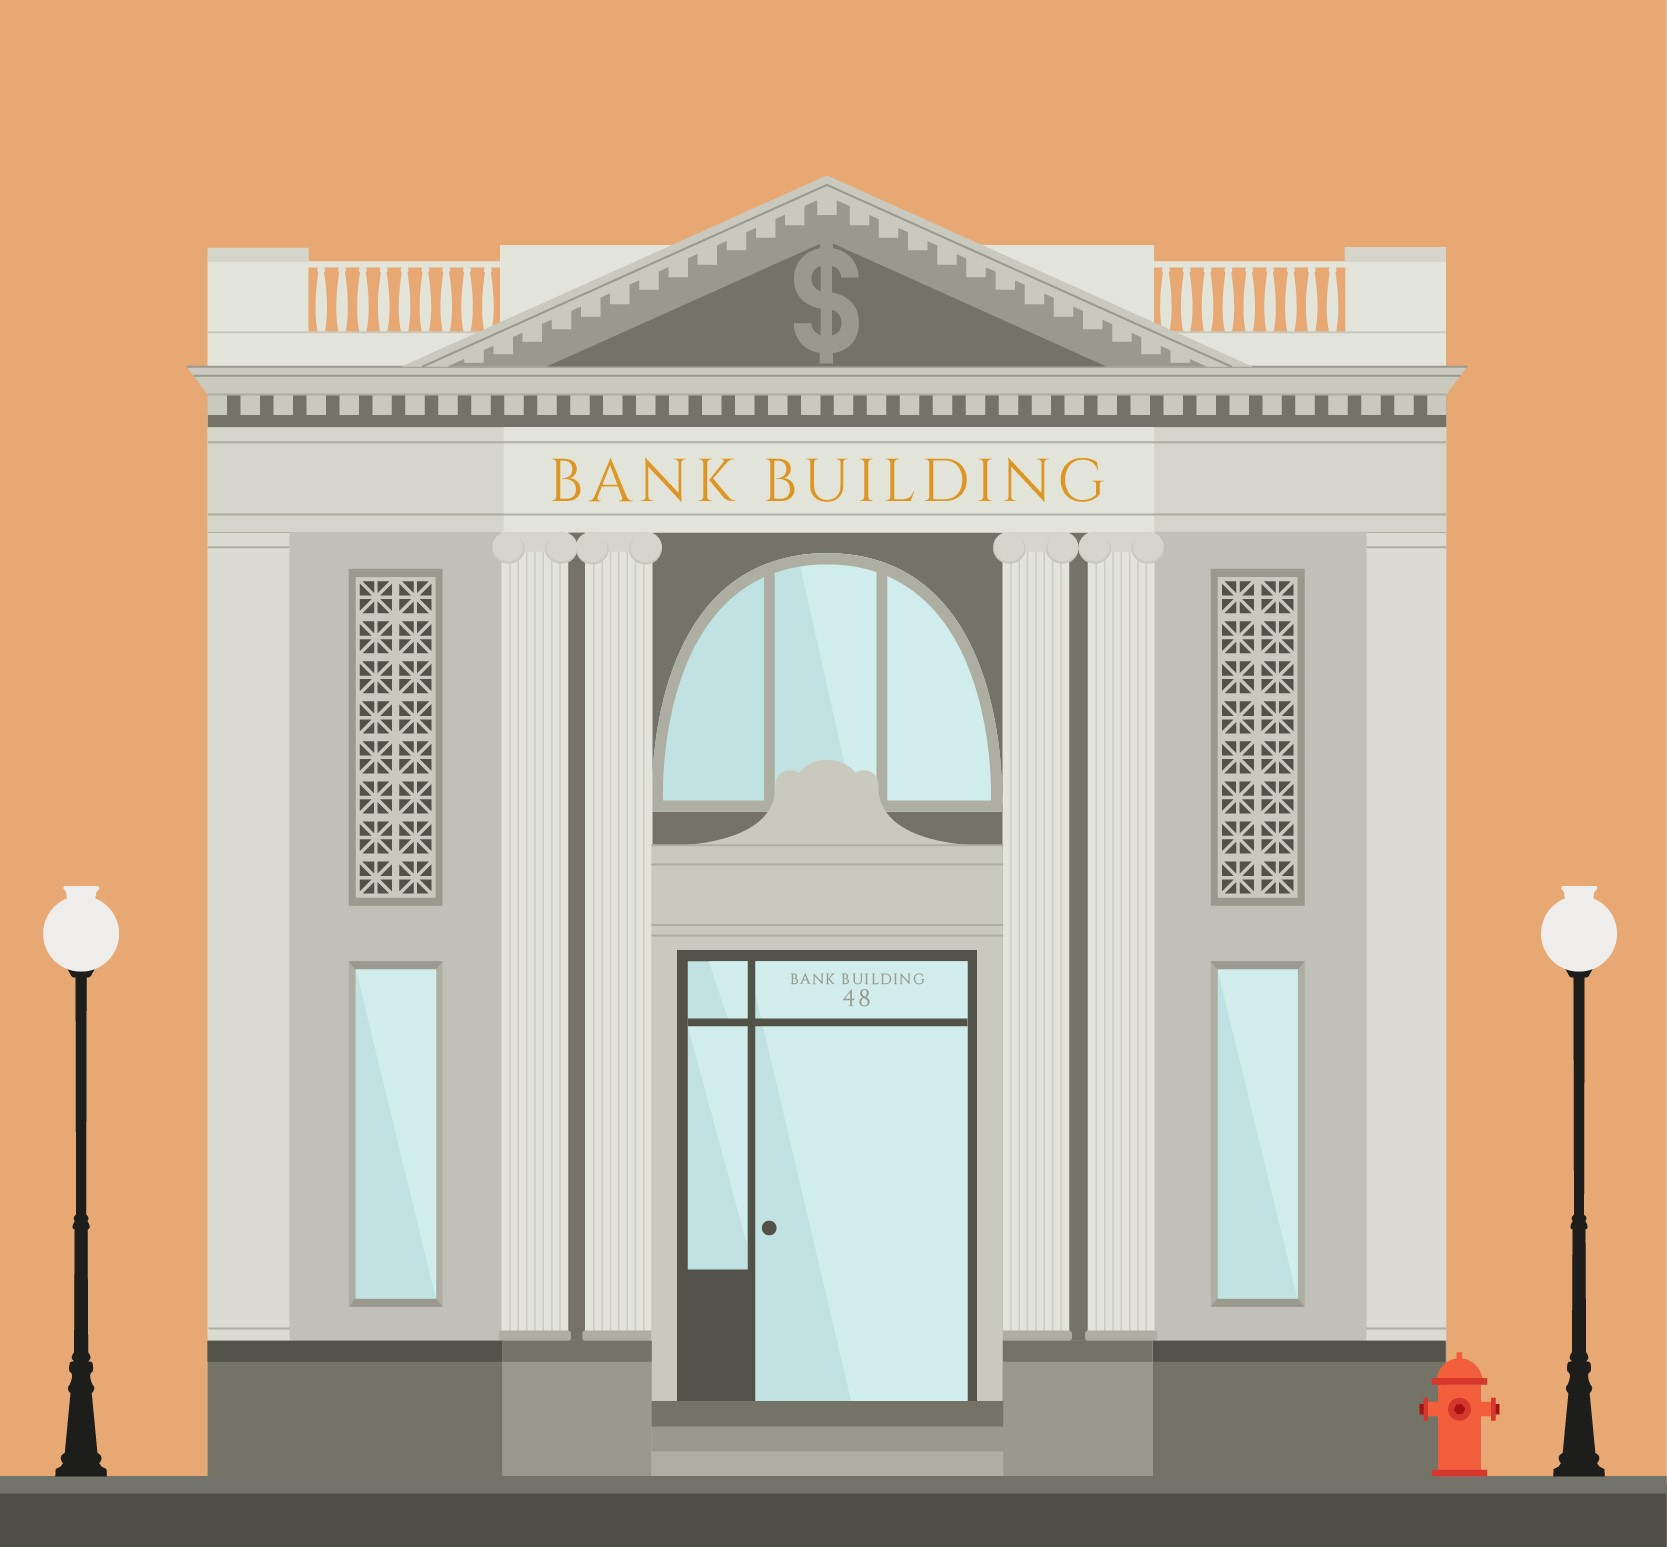 Banks are Rethinking their Branch Strategy